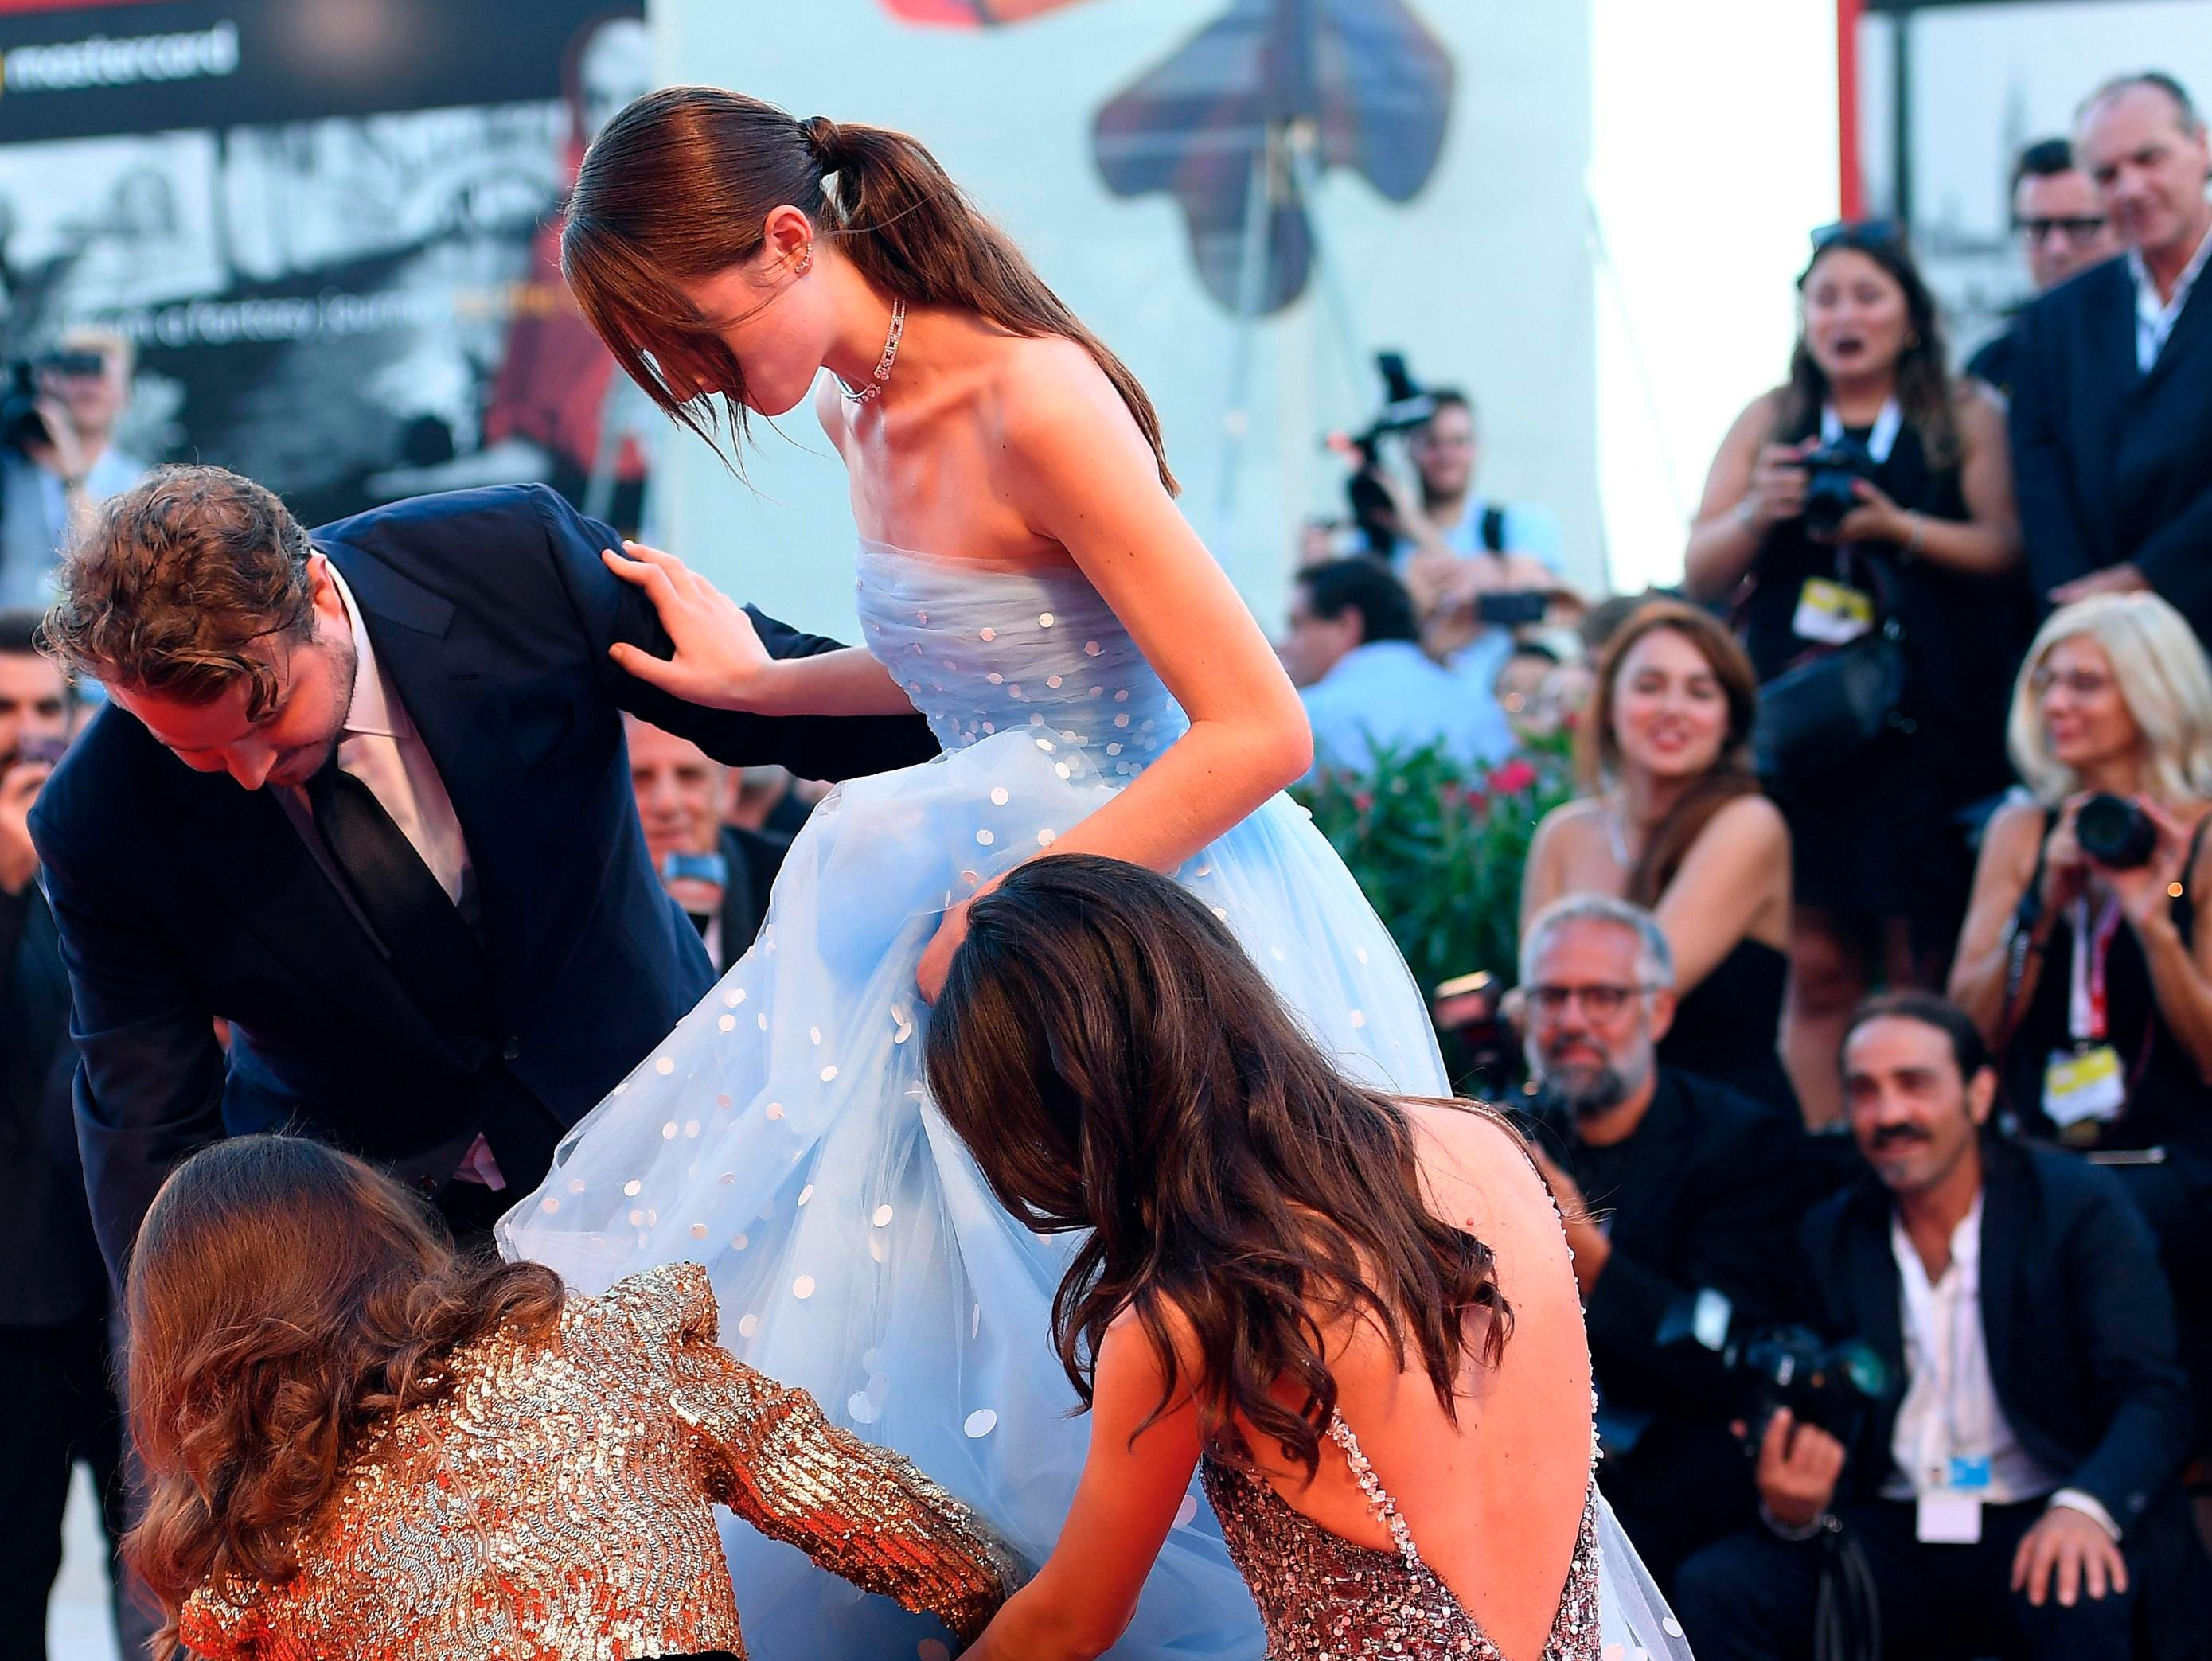 Director Brady Corbet, left, and Natalie Portman, bottom left, and Stacy Martin, bottom right, adjusts the dress of actress Raffey Cassidy at the premiere of the film 'Vox Lux' at the 75th edition of the Venice Film Festival in Venice, Italy, on Tuesday,. Click through to see all the action thus far.